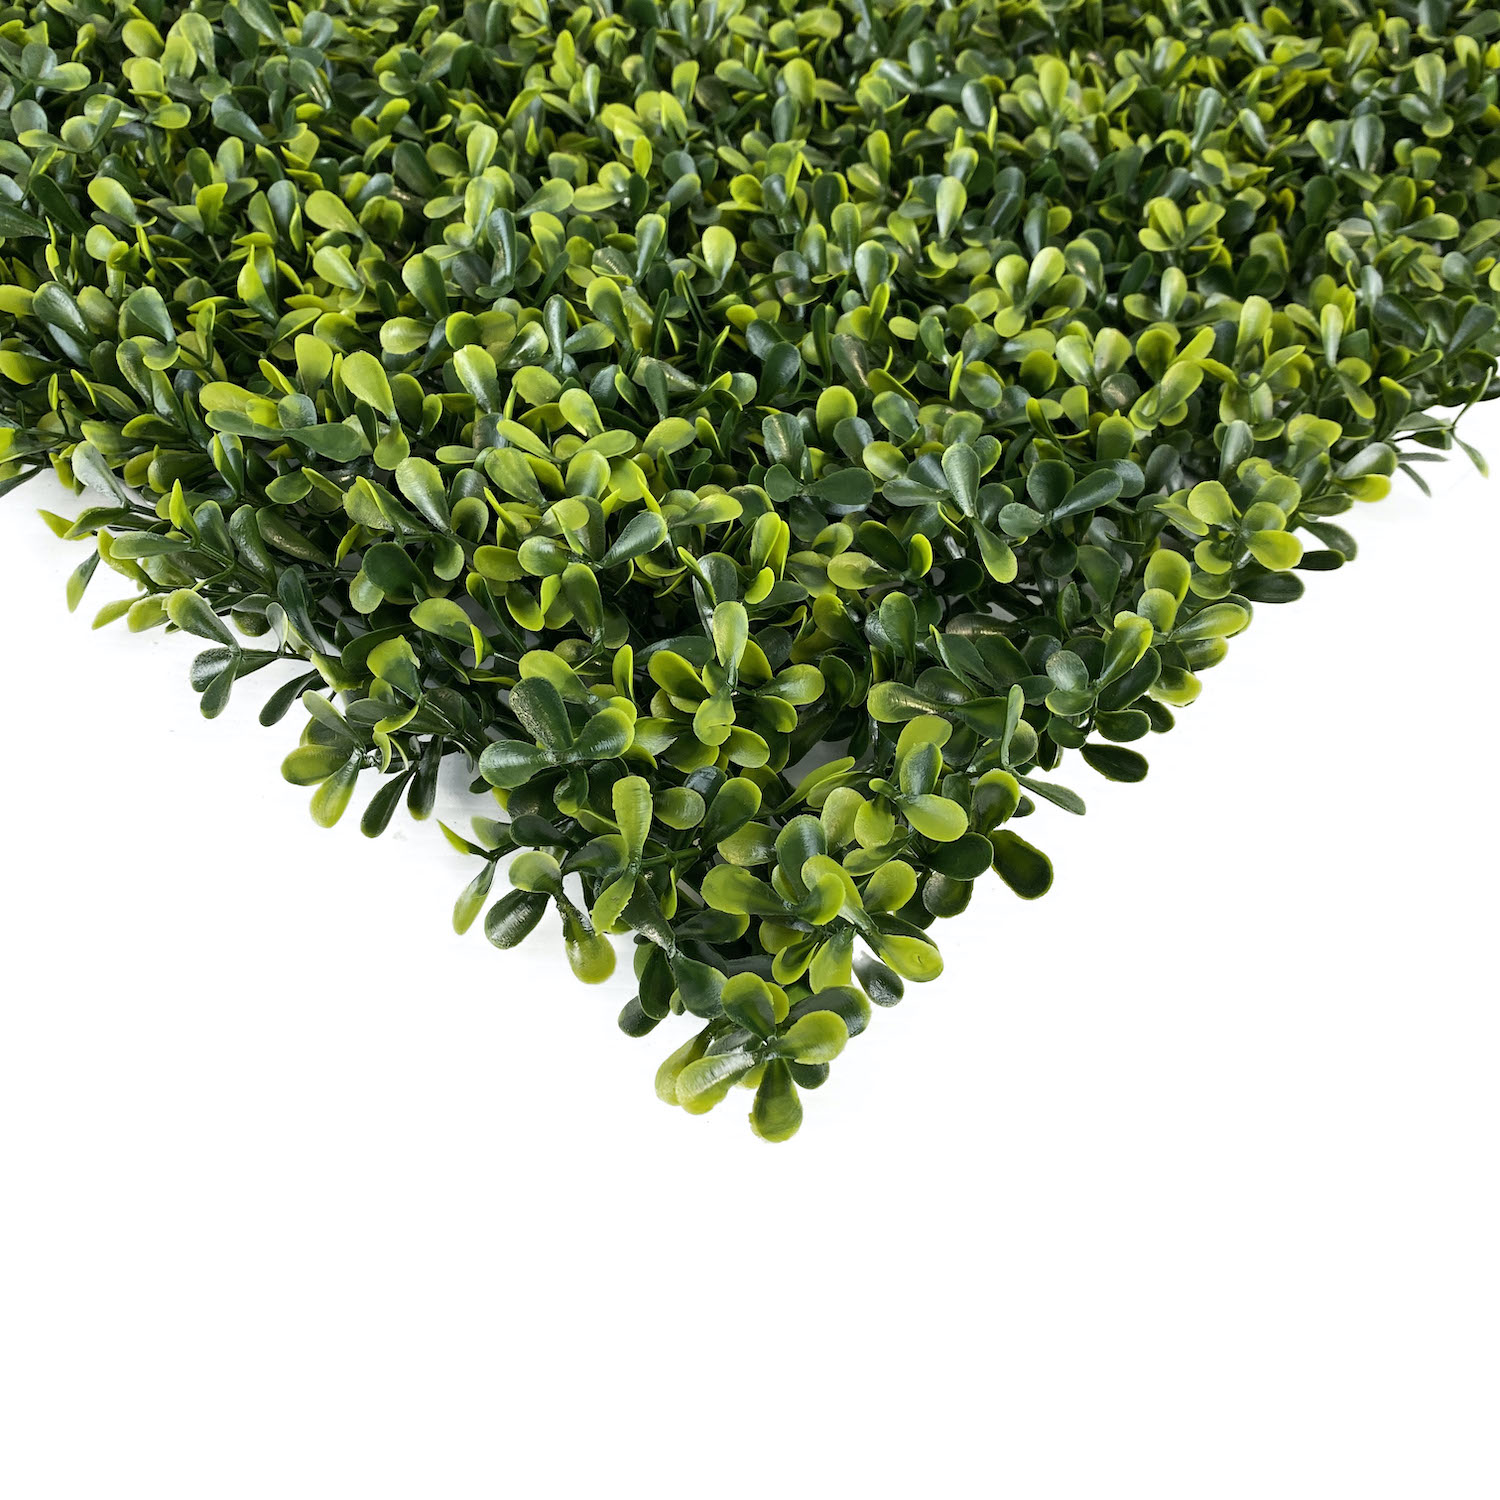 Artificial Topiary Hedge Tiles Hedge Tiles The Outdoor Look